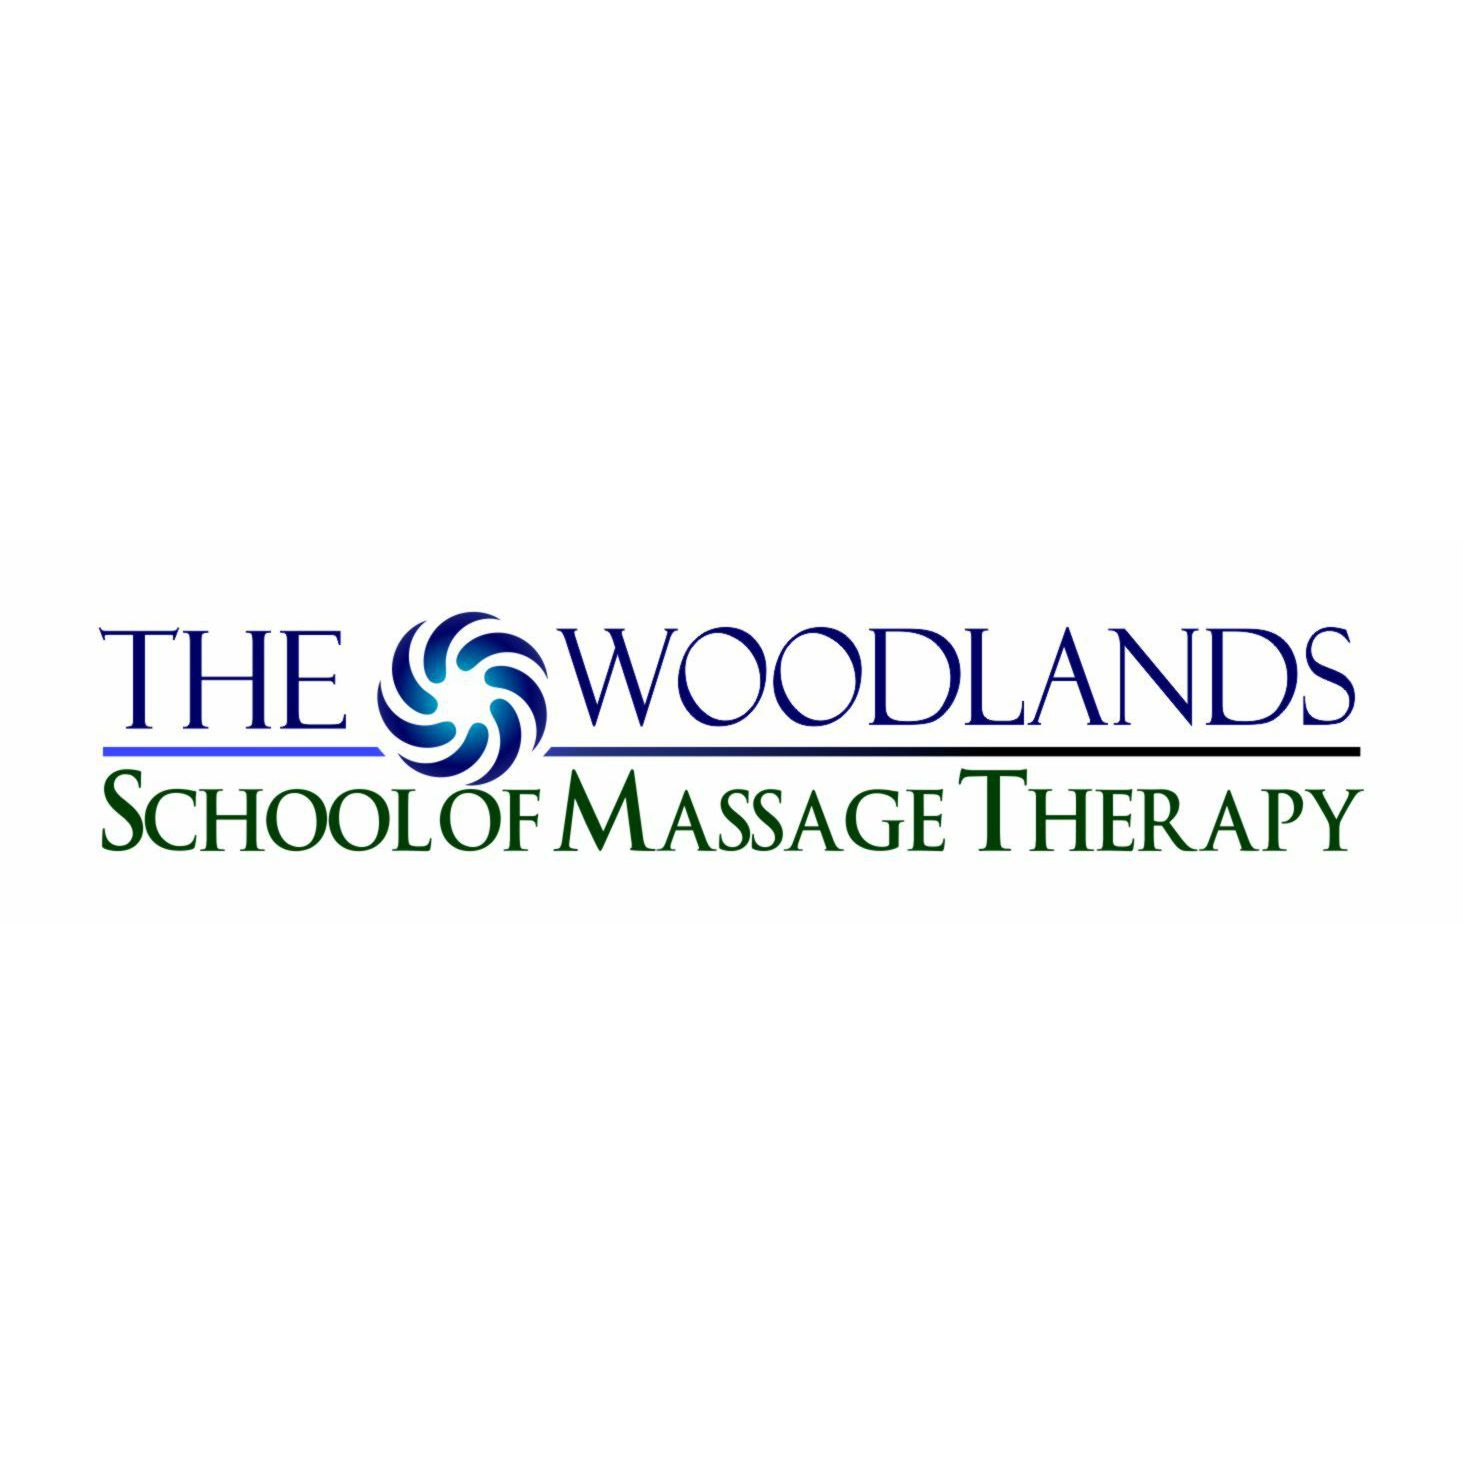 The Woodlands School of Massage Therapy